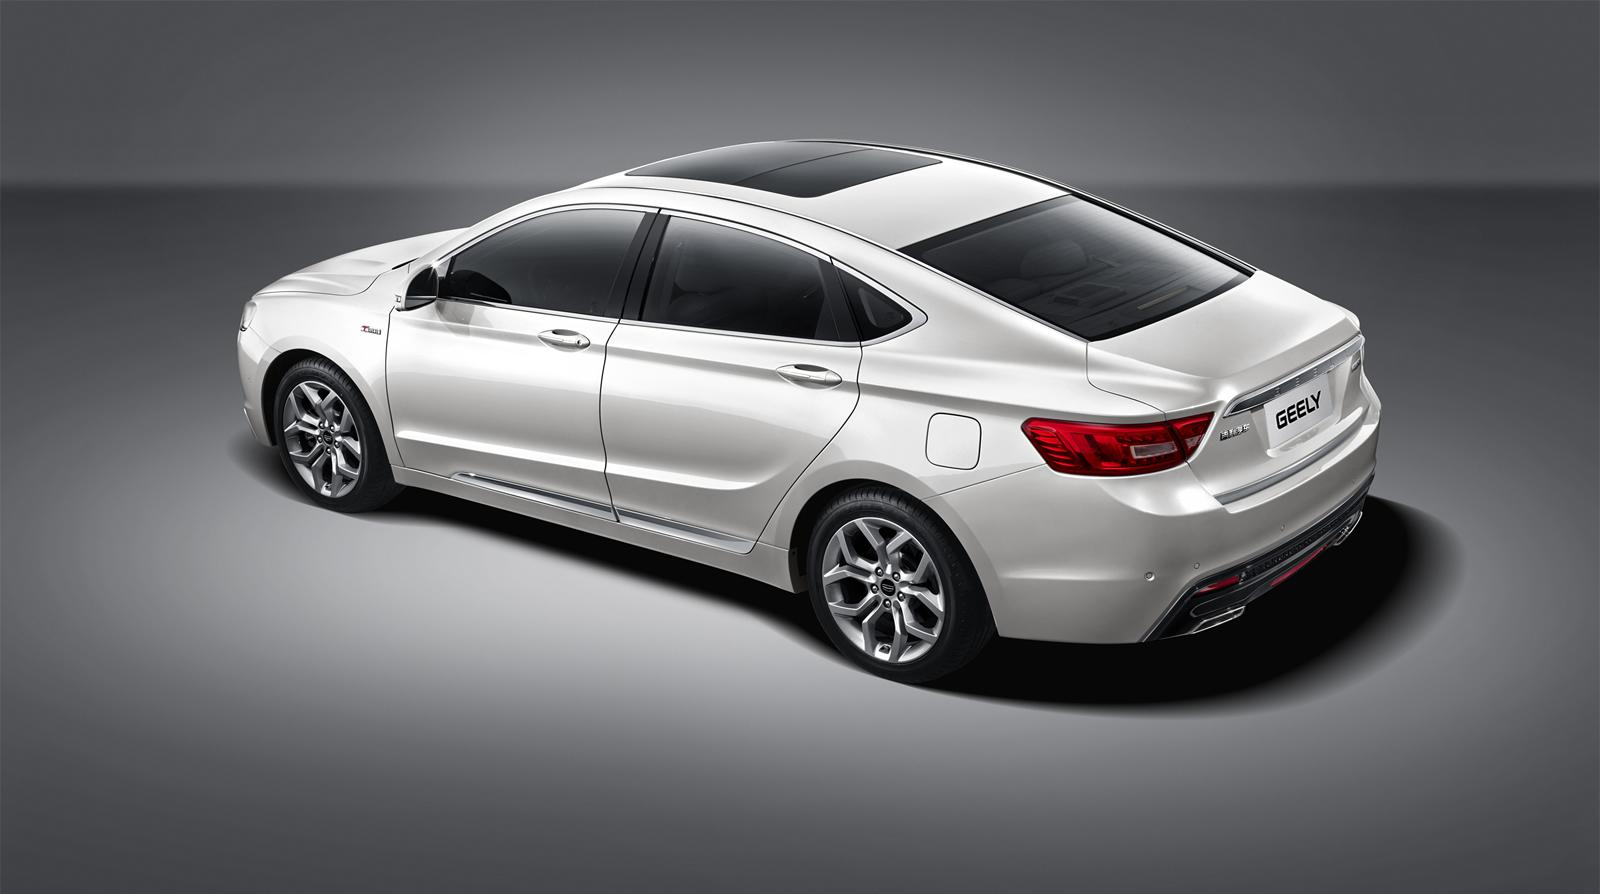 Geely GC9 Is a Classy New Chinese Sedan - autoevolution